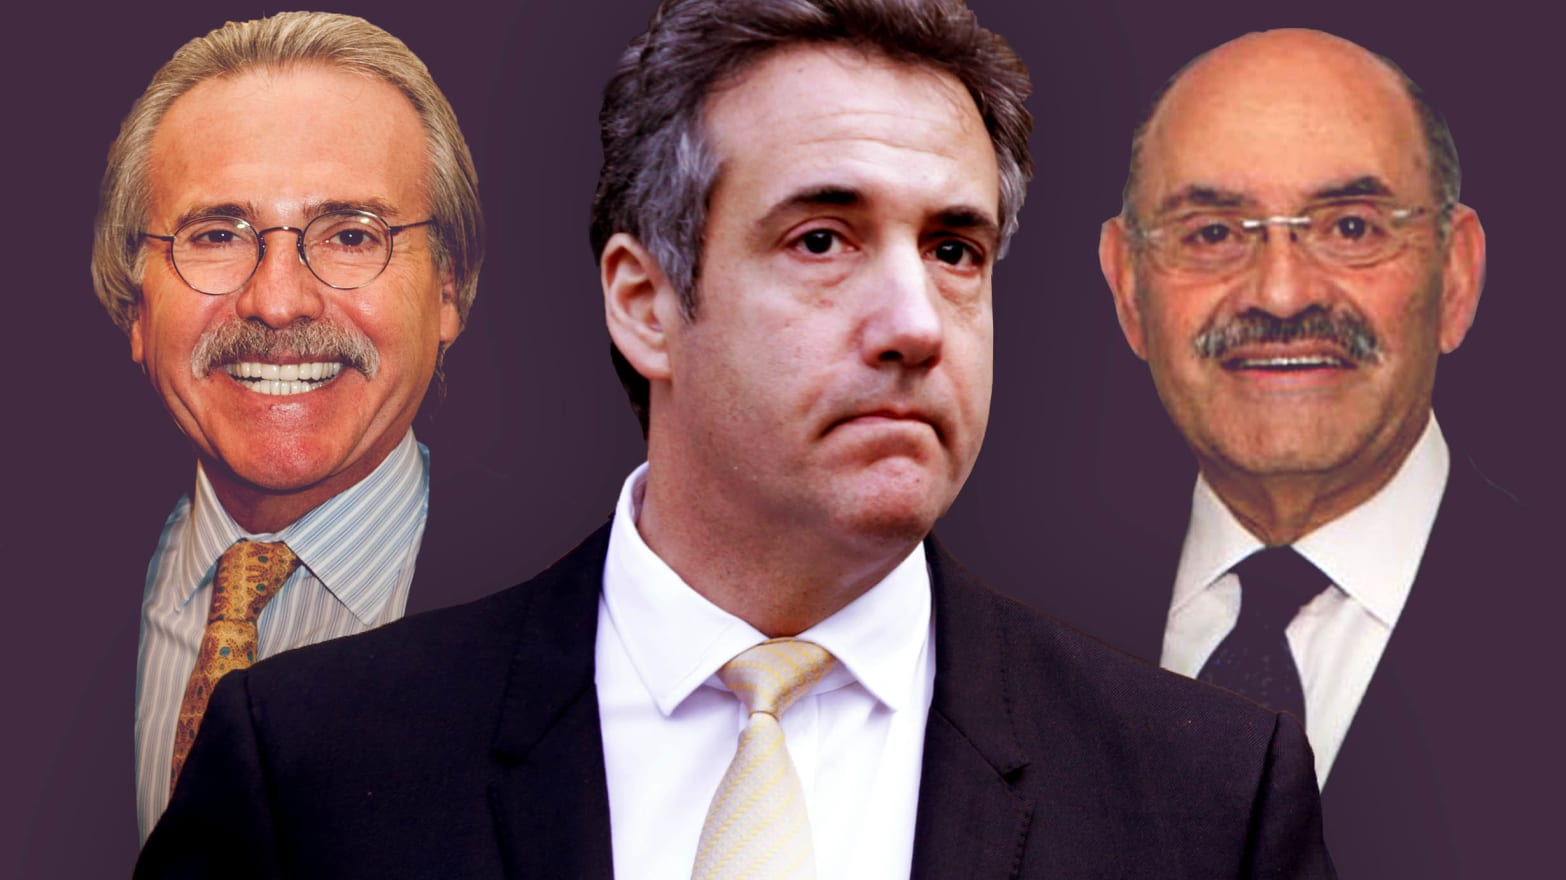 Feds Needs To Get Their Facts Straight >> Cohen Pecker Weisselberg The Men With Trump S Secrets Work For